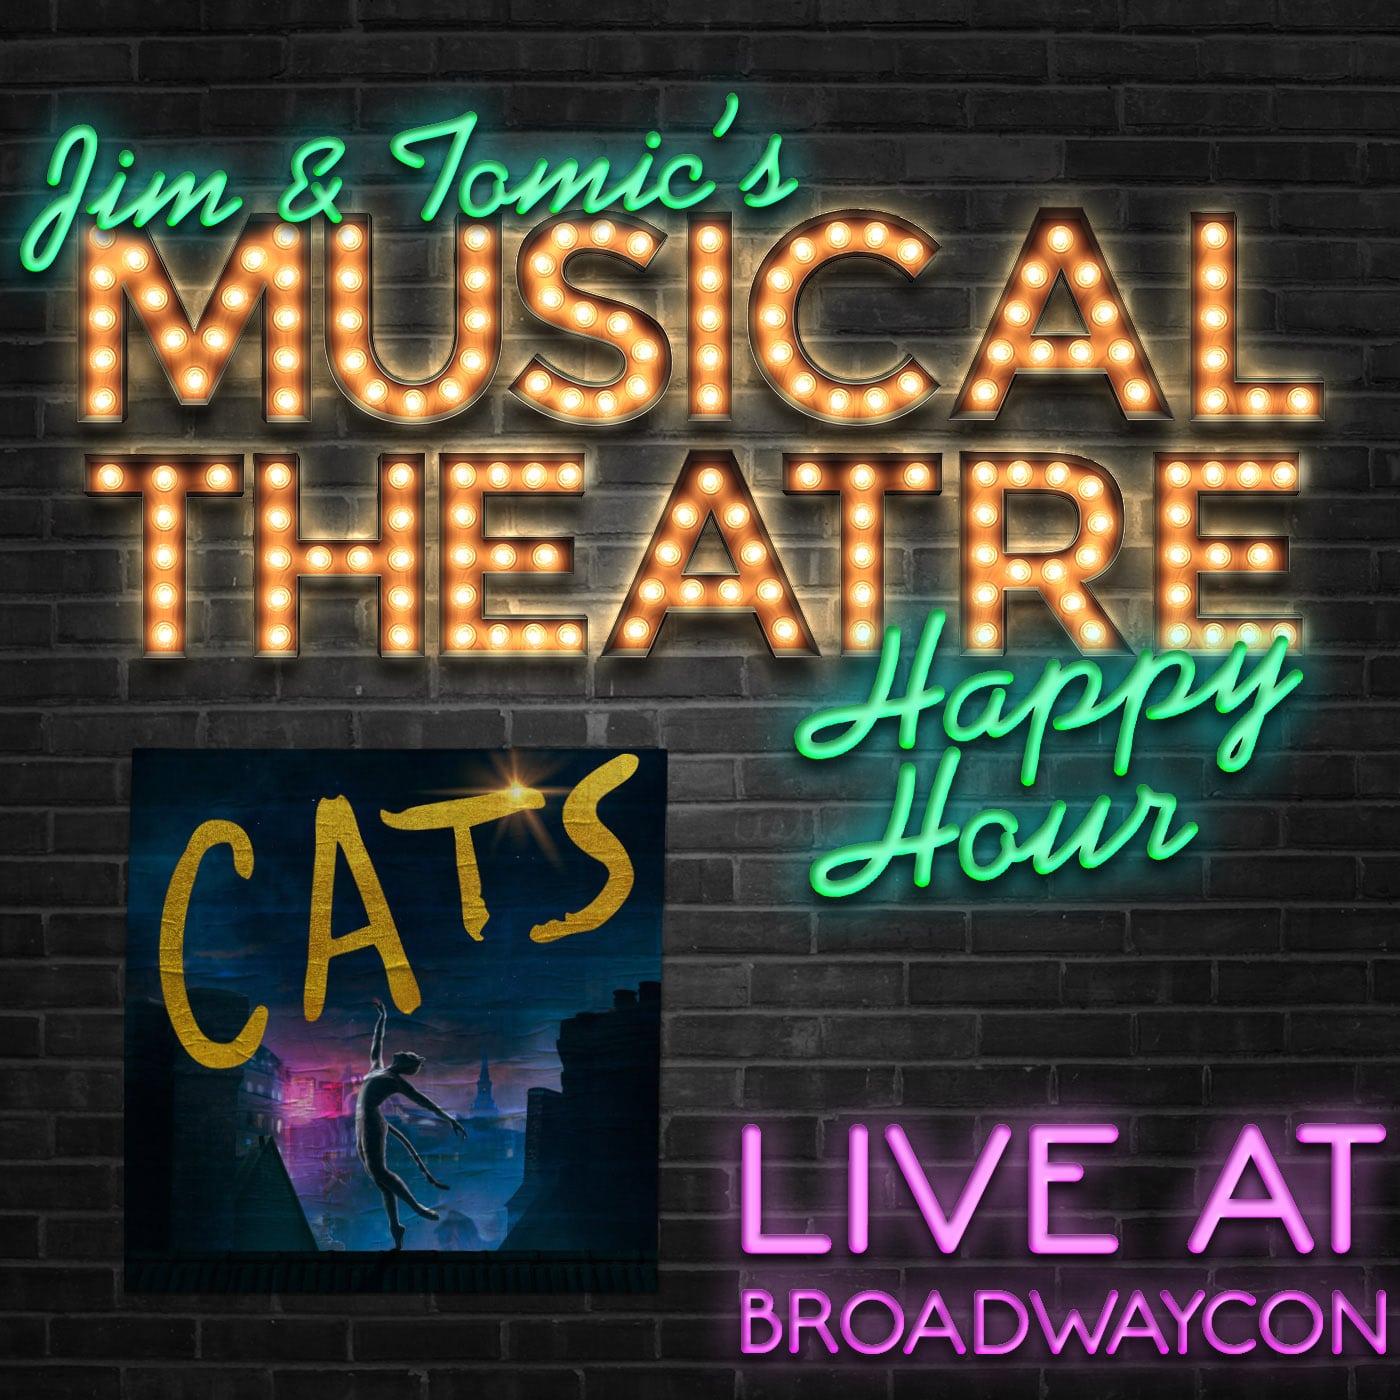 Jim & Tomic Live at BroadwayCon 2020 featuring CATS